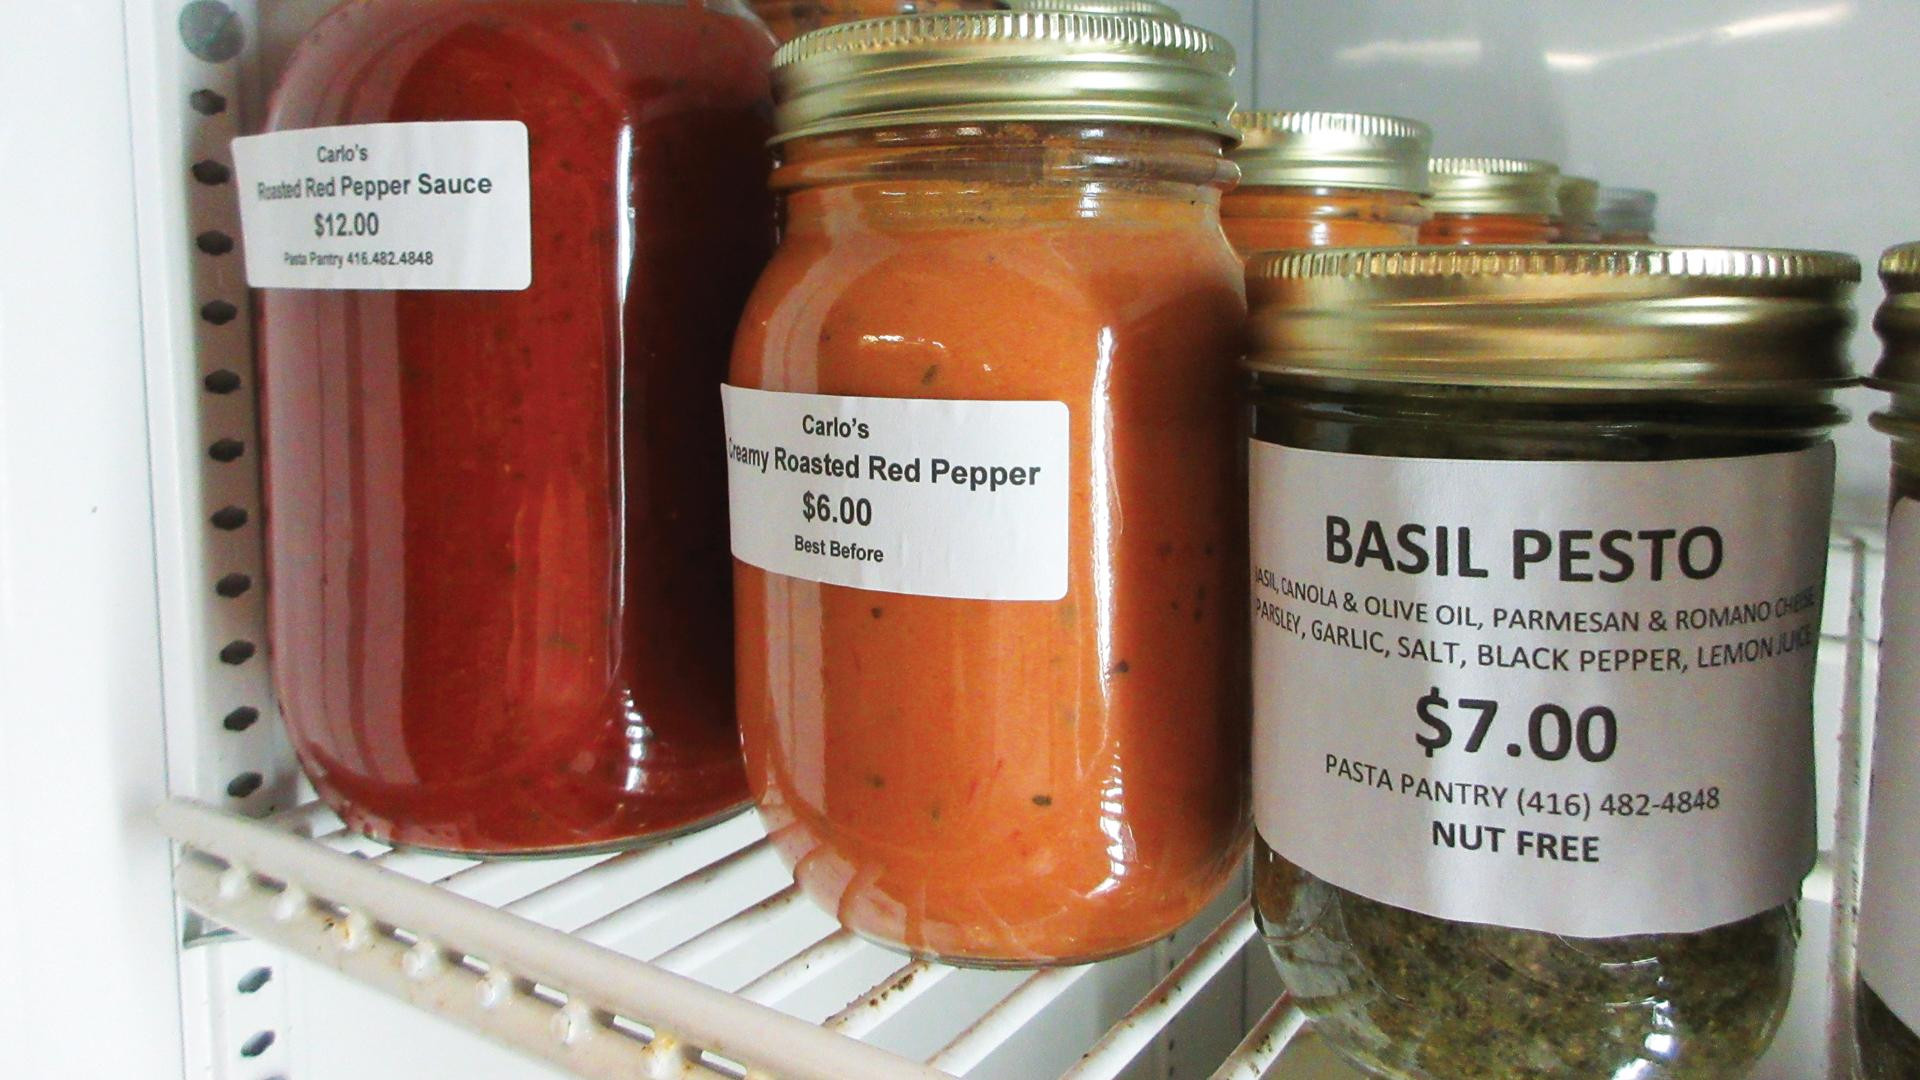 Local businesses in Toronto | Homemade sauces at Pasta Pantry